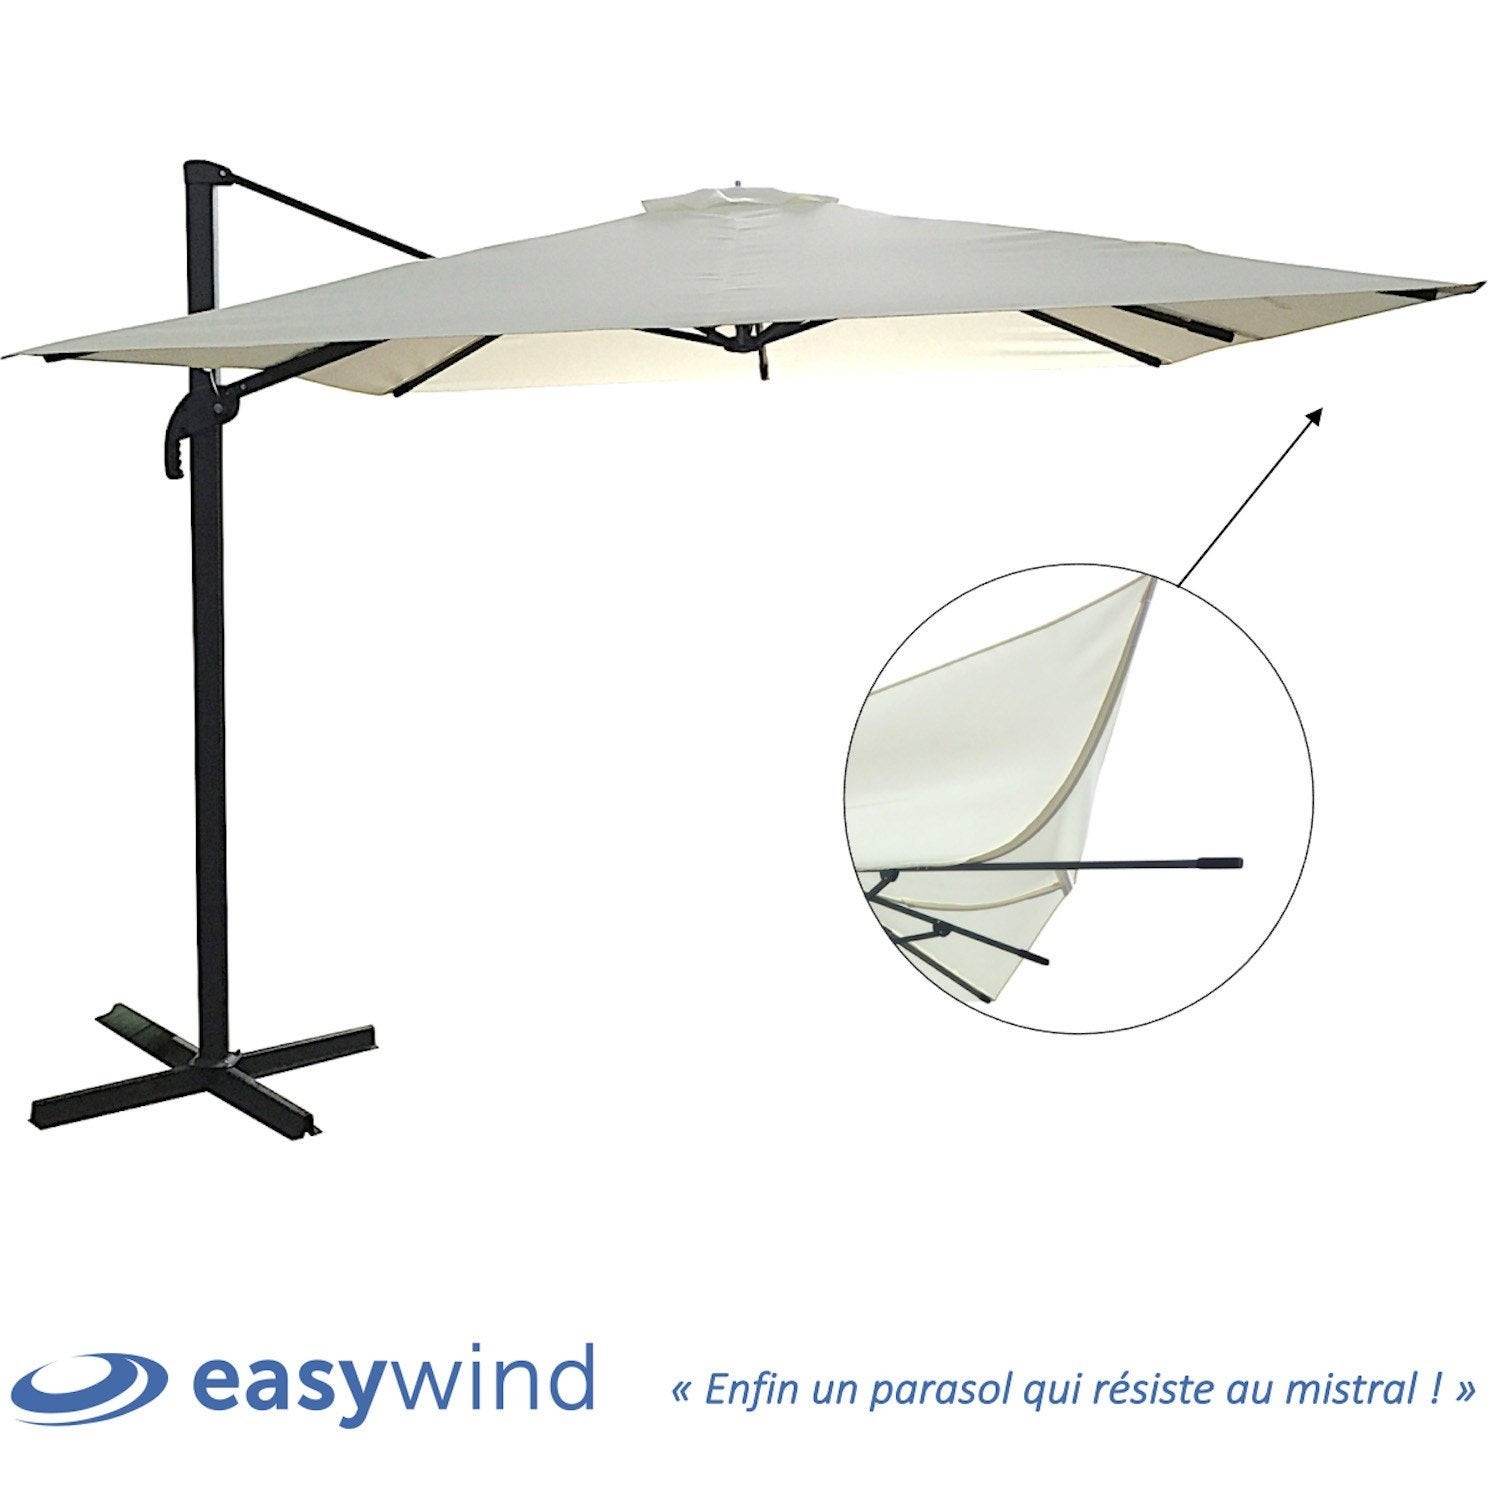 parasol anti vent easywind m t d port cru 2 7 x 2 7 m leroy merlin. Black Bedroom Furniture Sets. Home Design Ideas